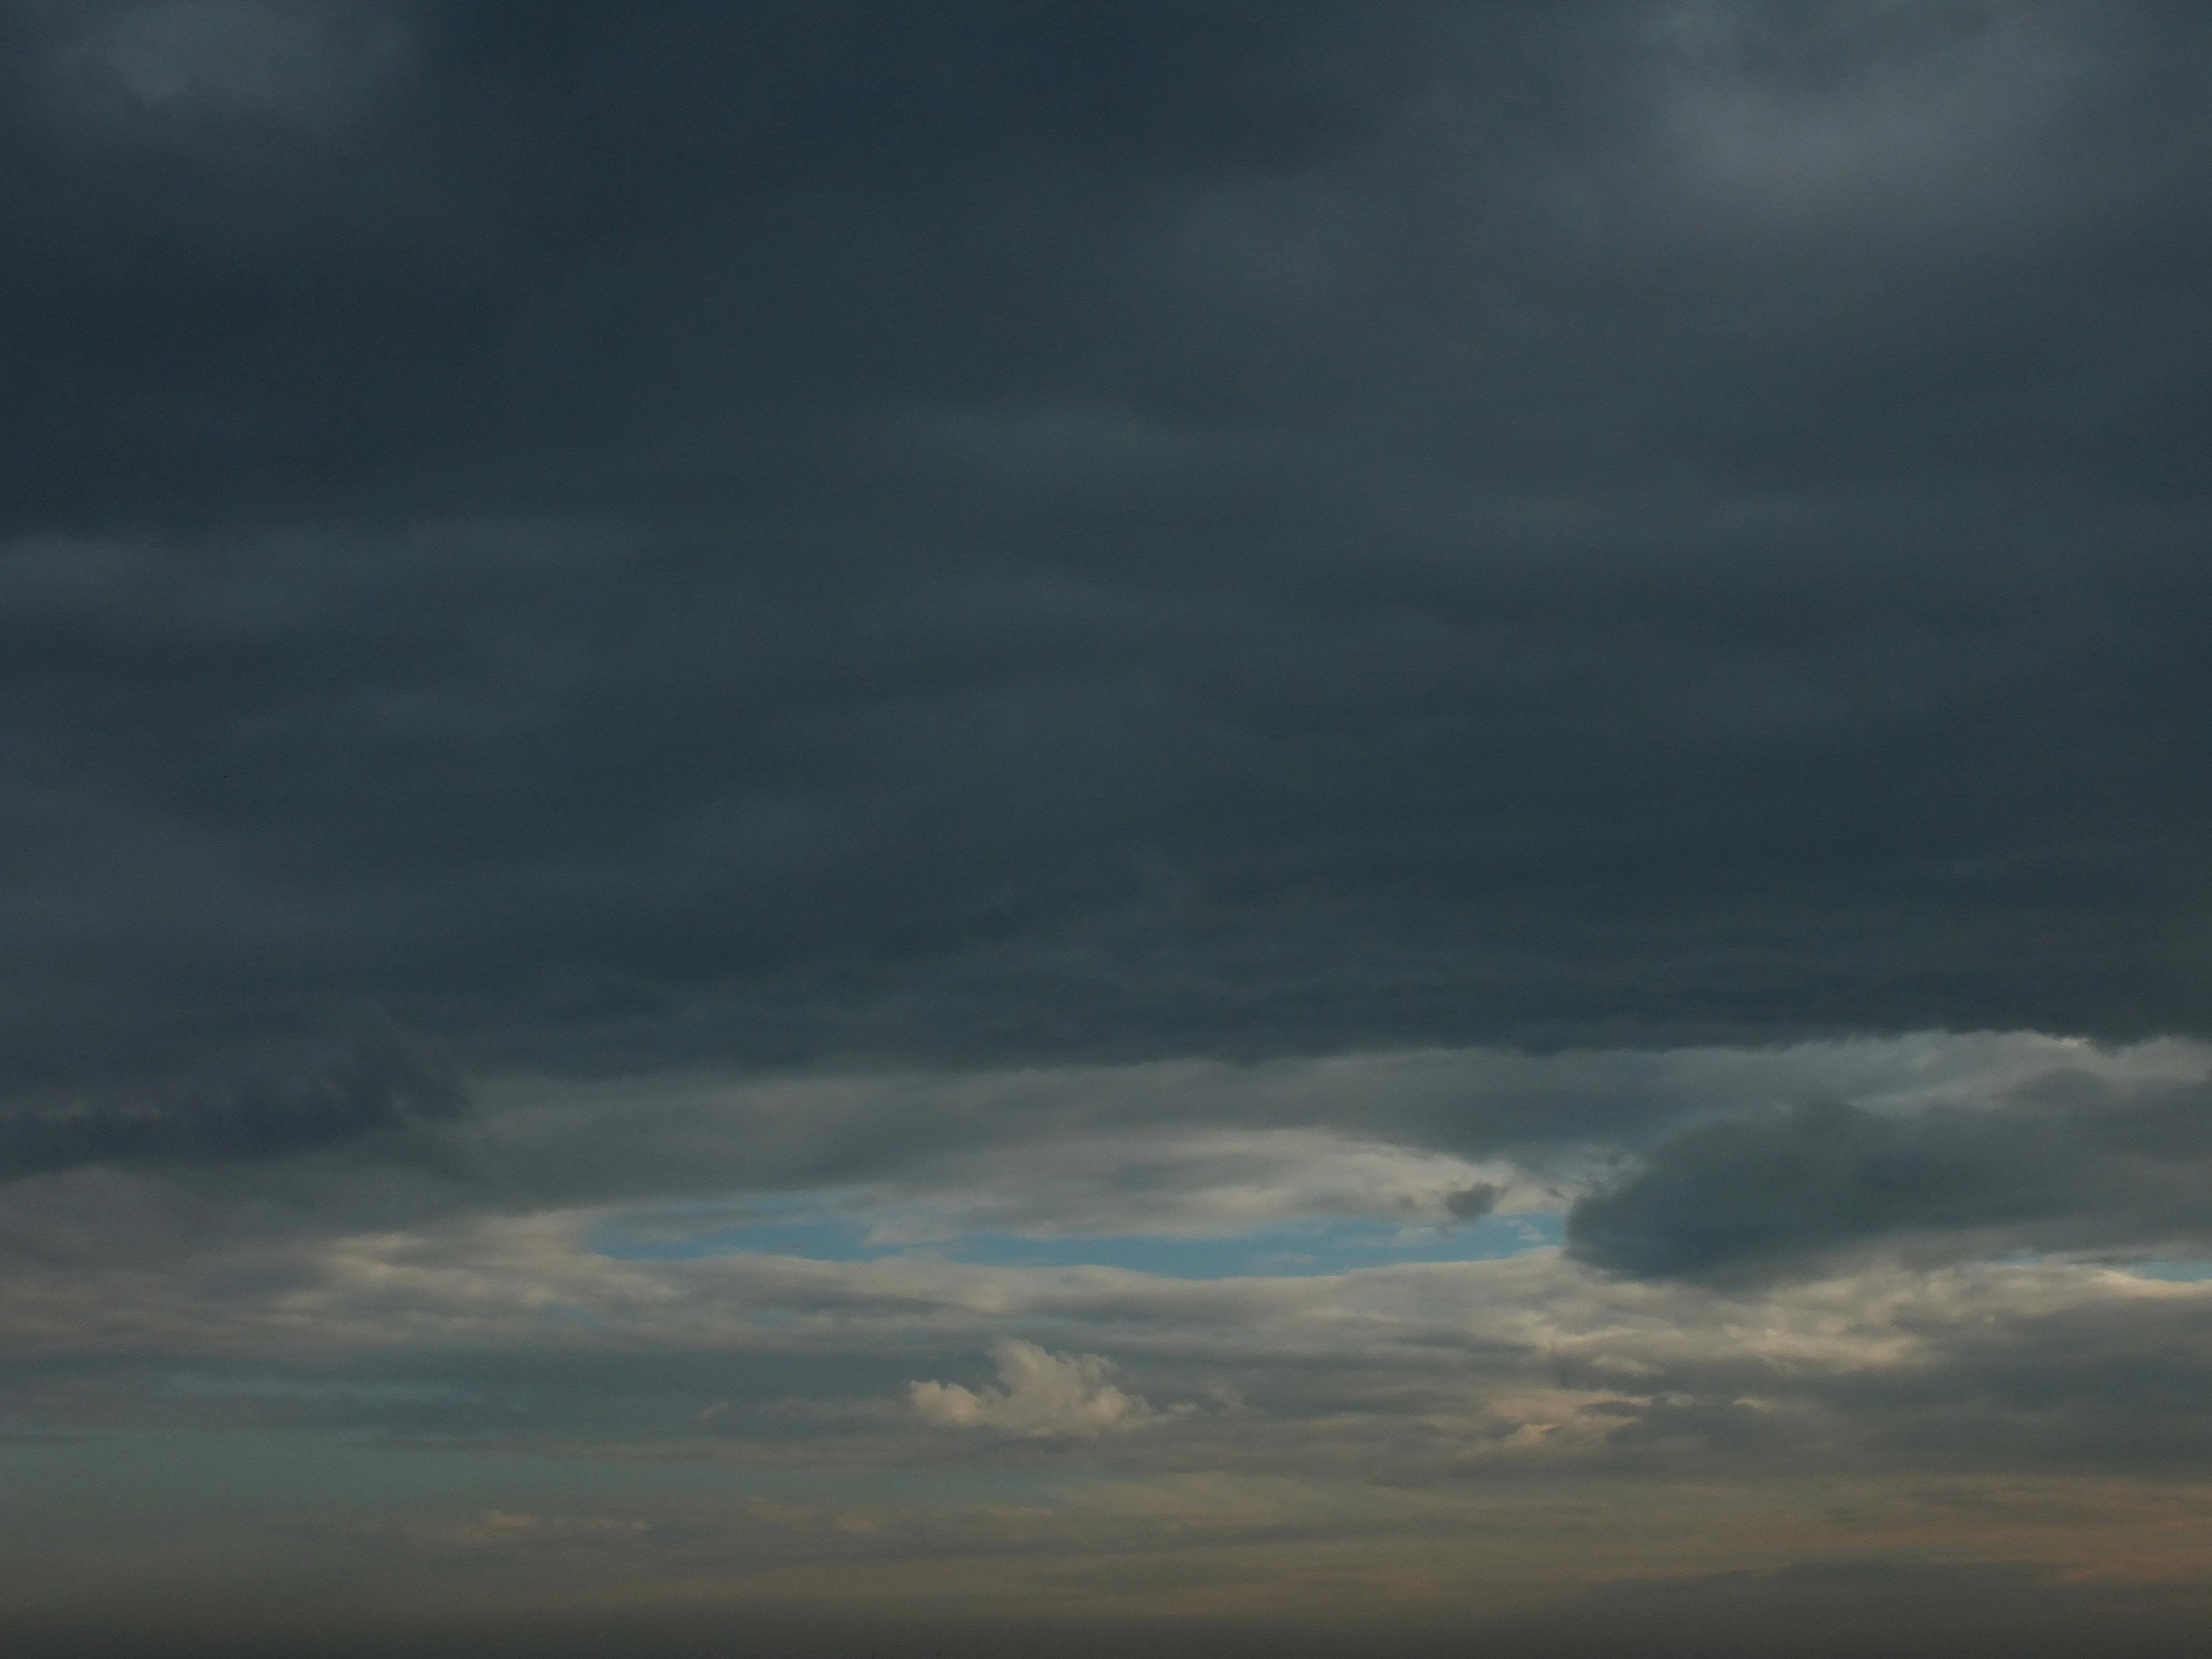 Sky: Clouds Vortex Cloudy Rainy Whirl Dark Nature Wallpaper For ...